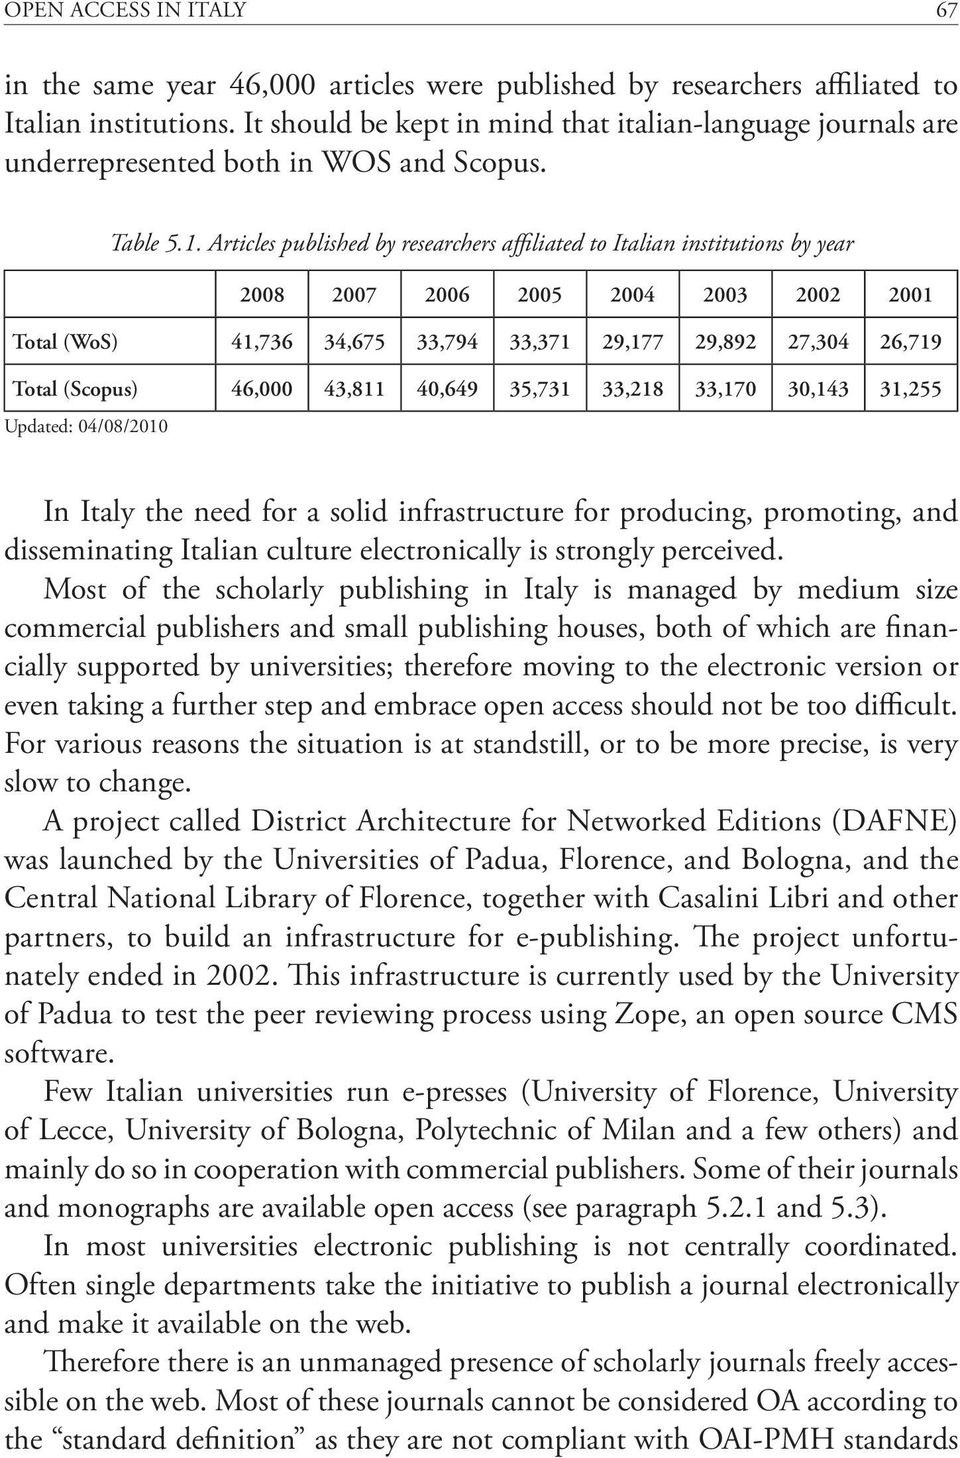 Articles published by researchers affiliated to Italian institutions by year 2008 2007 2006 2005 2004 2003 2002 2001 Total (WoS) 41,736 34,675 33,794 33,371 29,177 29,892 27,304 26,719 Total (Scopus)